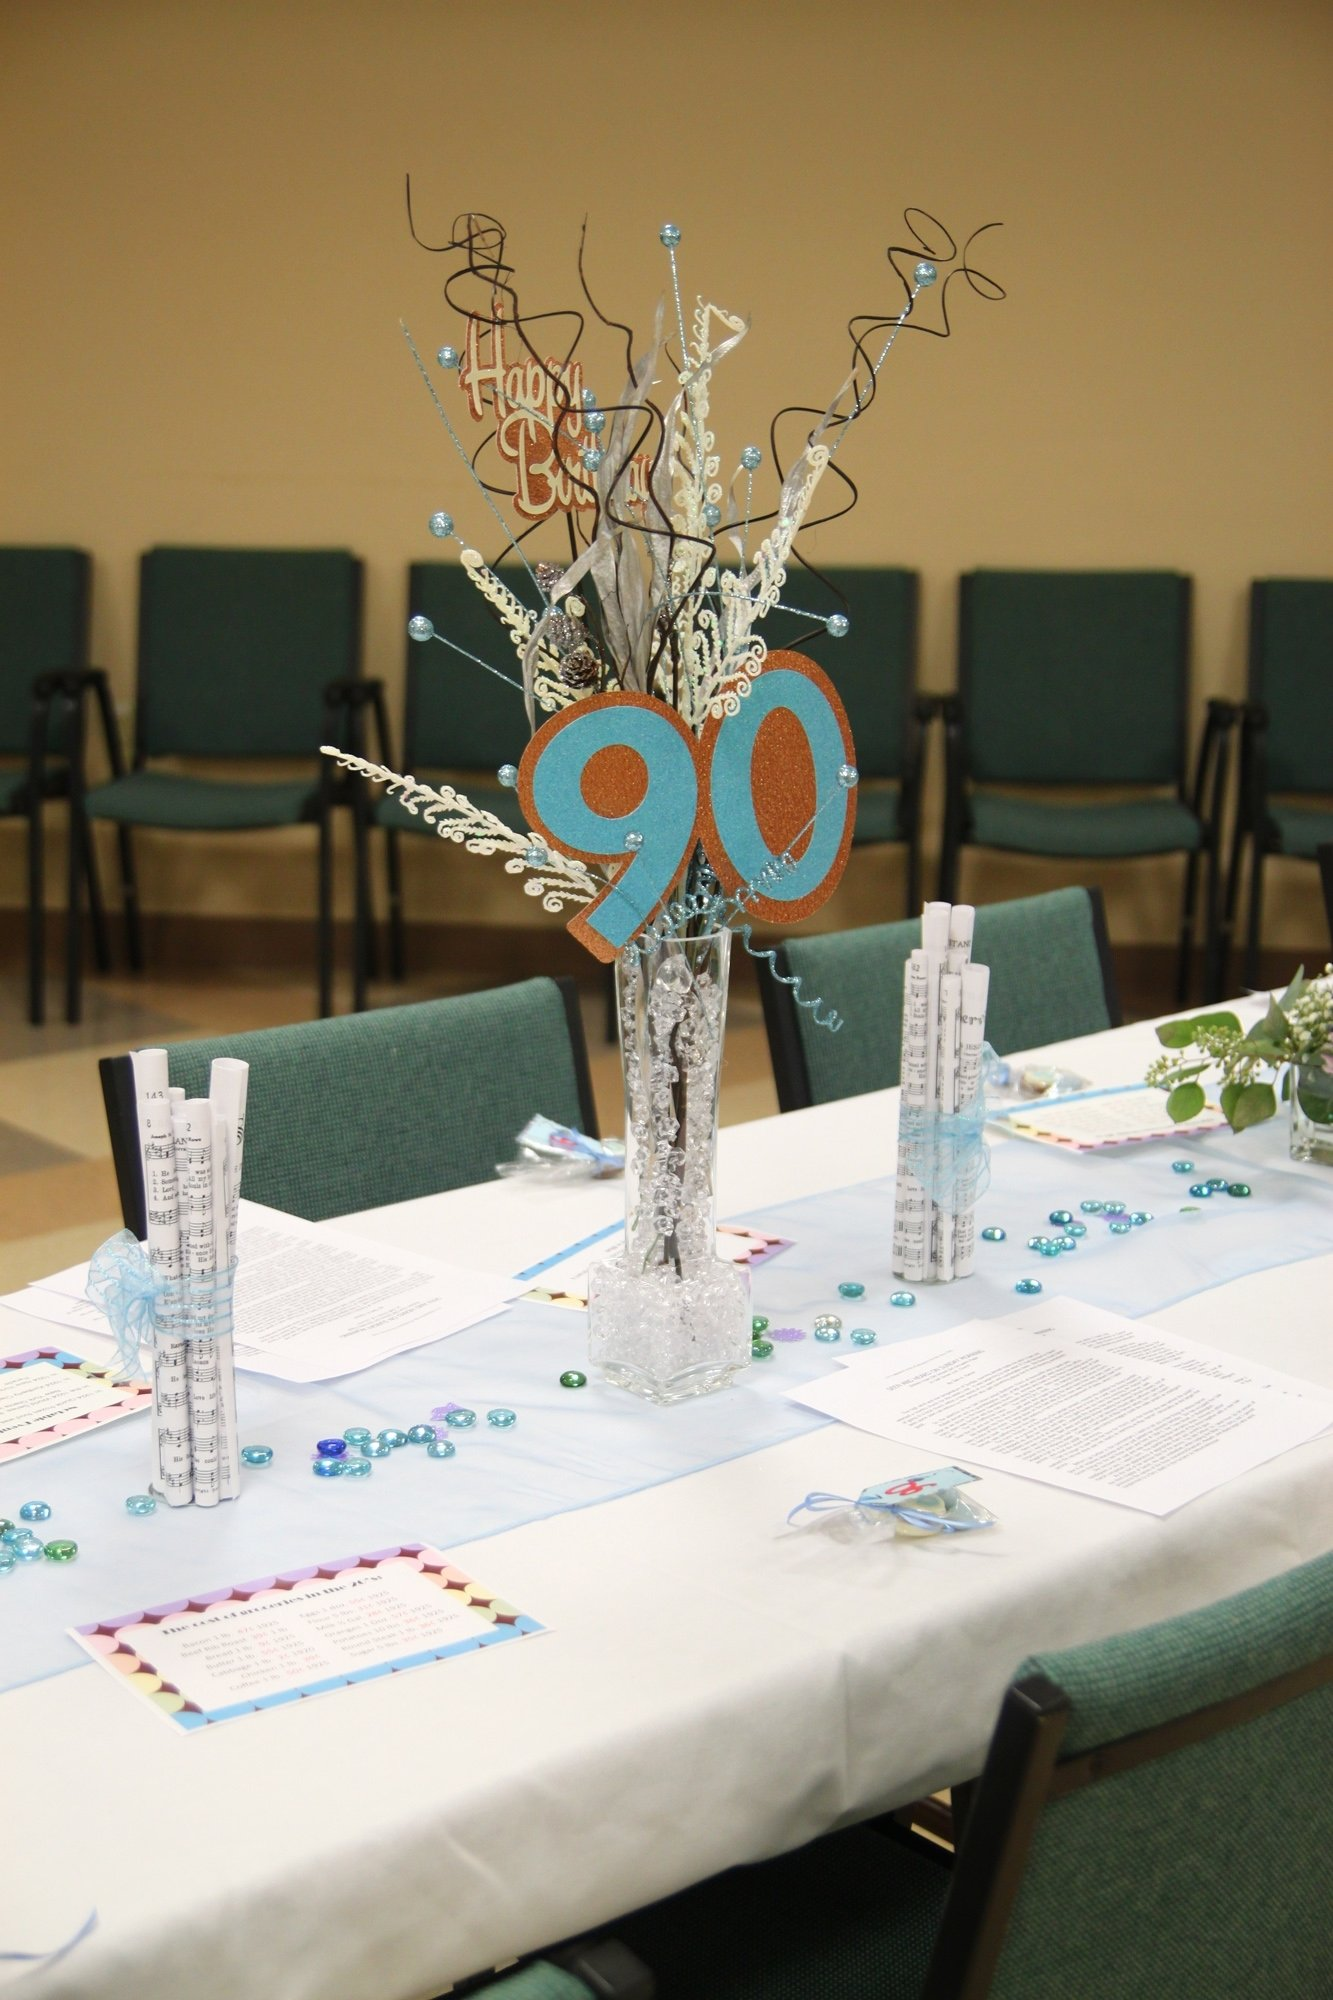 centerpieces for mom's 90th birthday | mom's 90th birthday